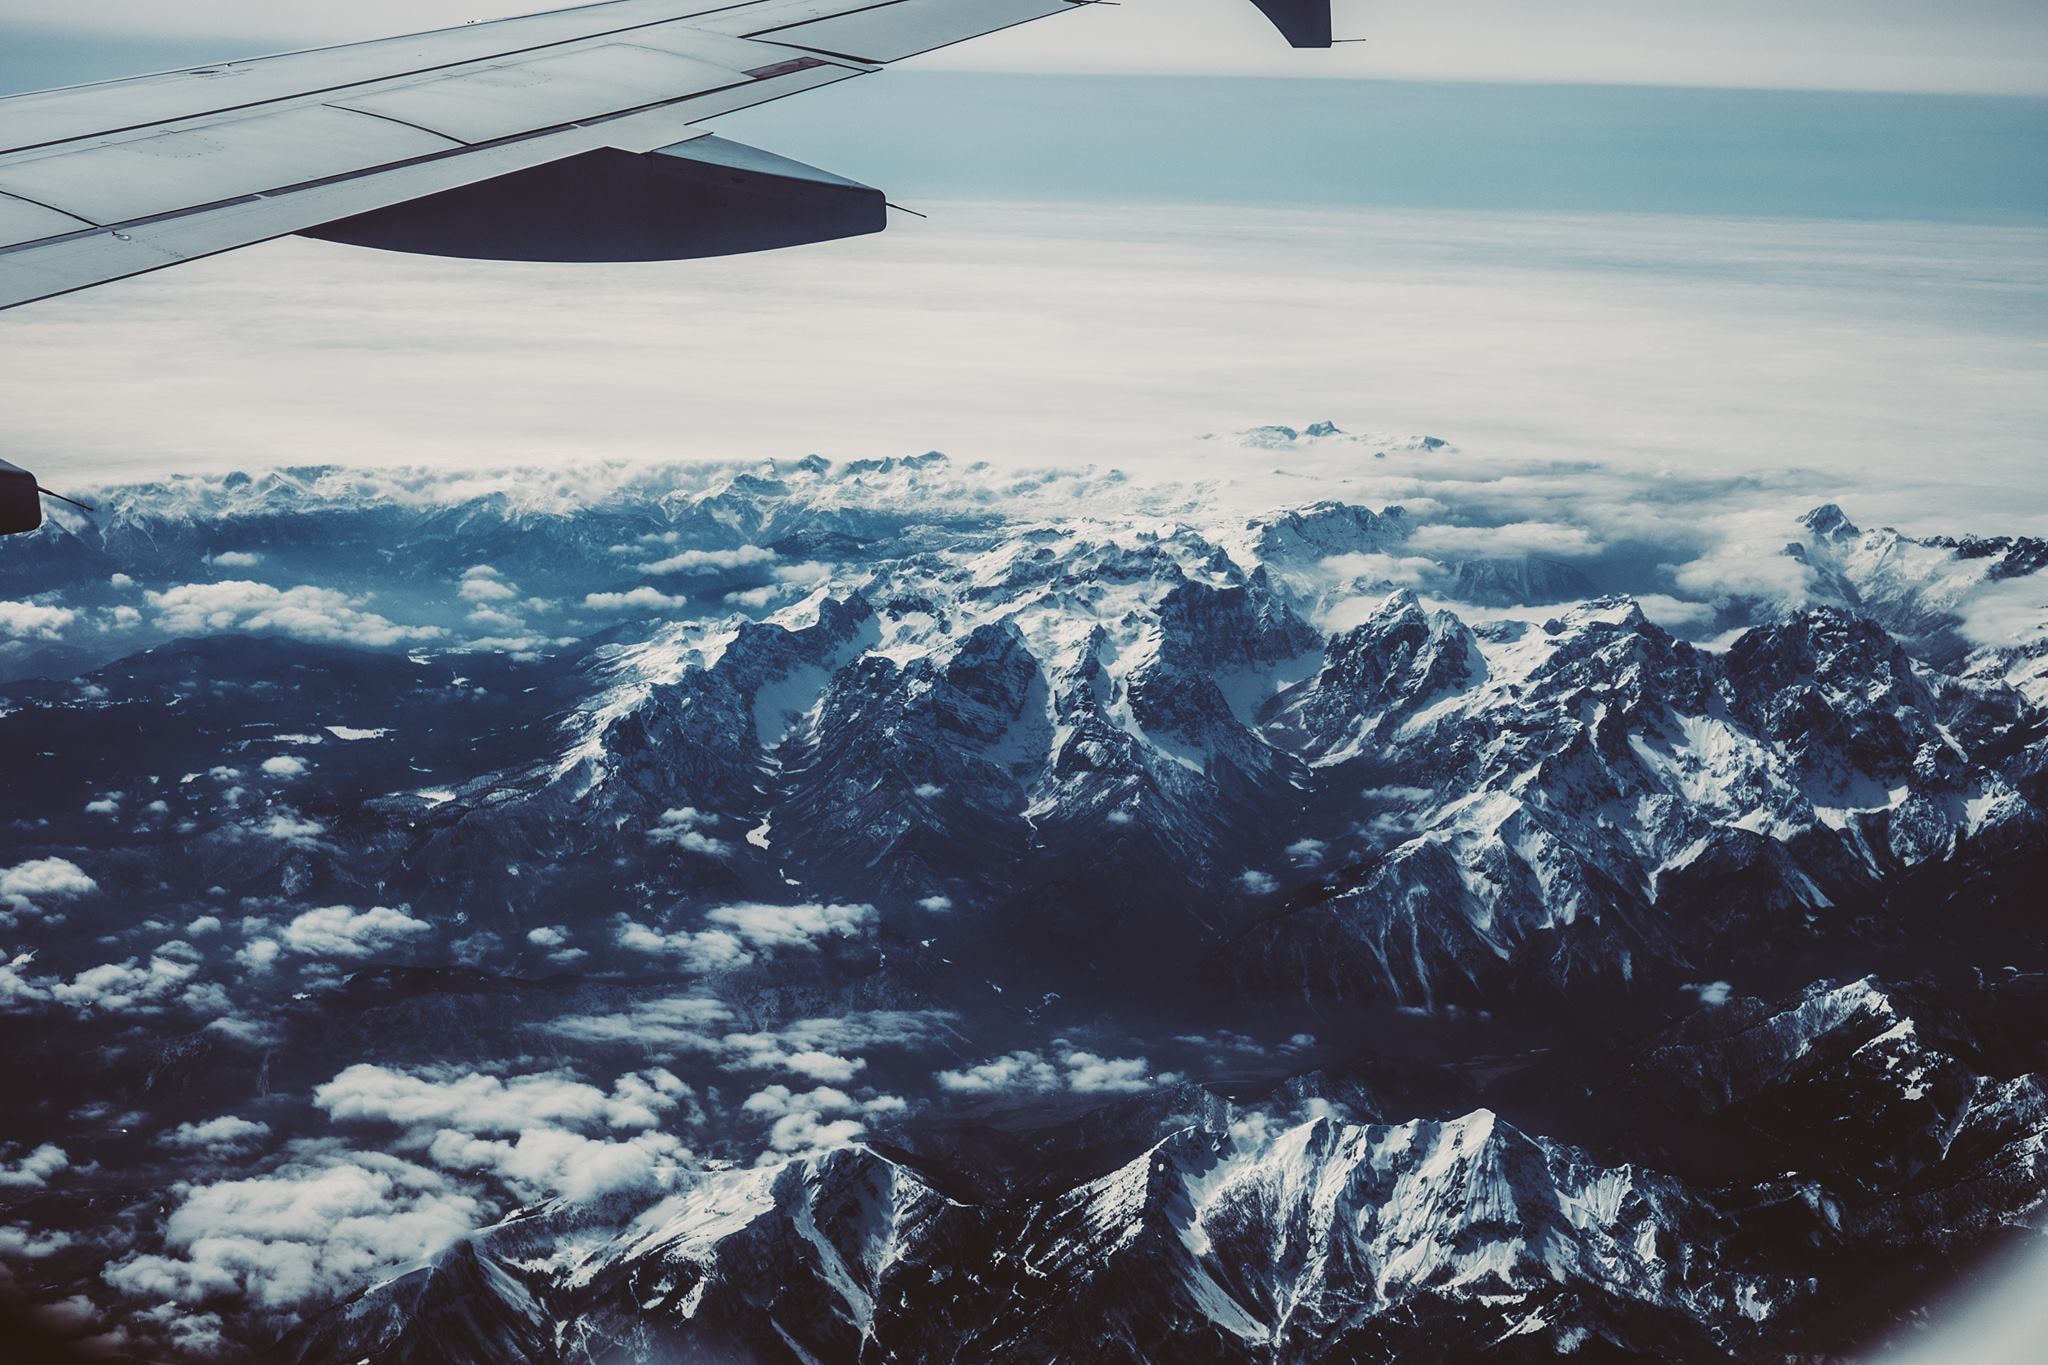 View of airplane wing crossing snowy mountains